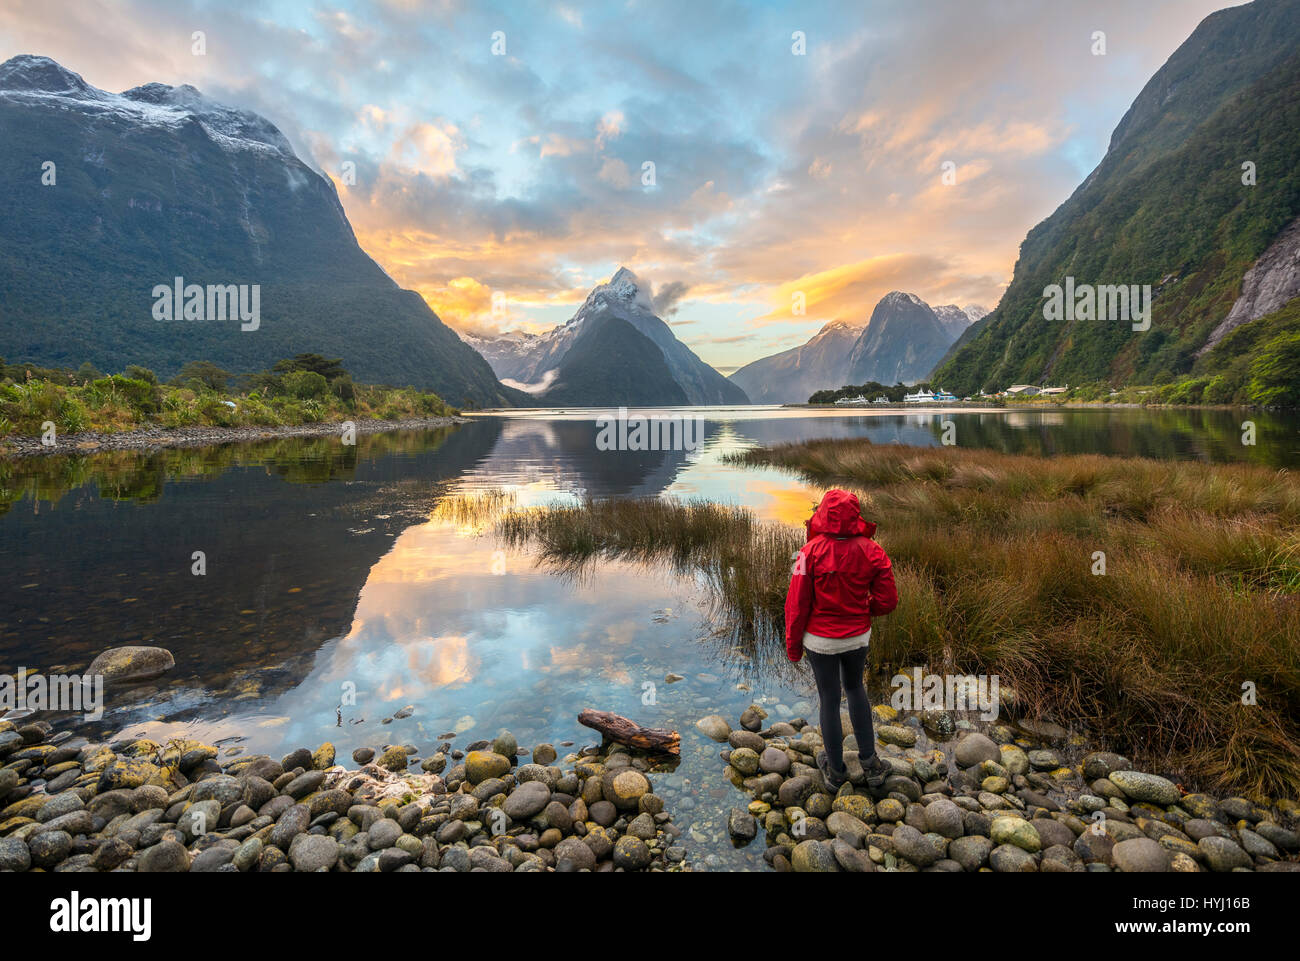 Tourist looking at the landscape, Miter Peak reflected in the water, sunset, Milford Sound, Fiordland National Park, Stock Photo